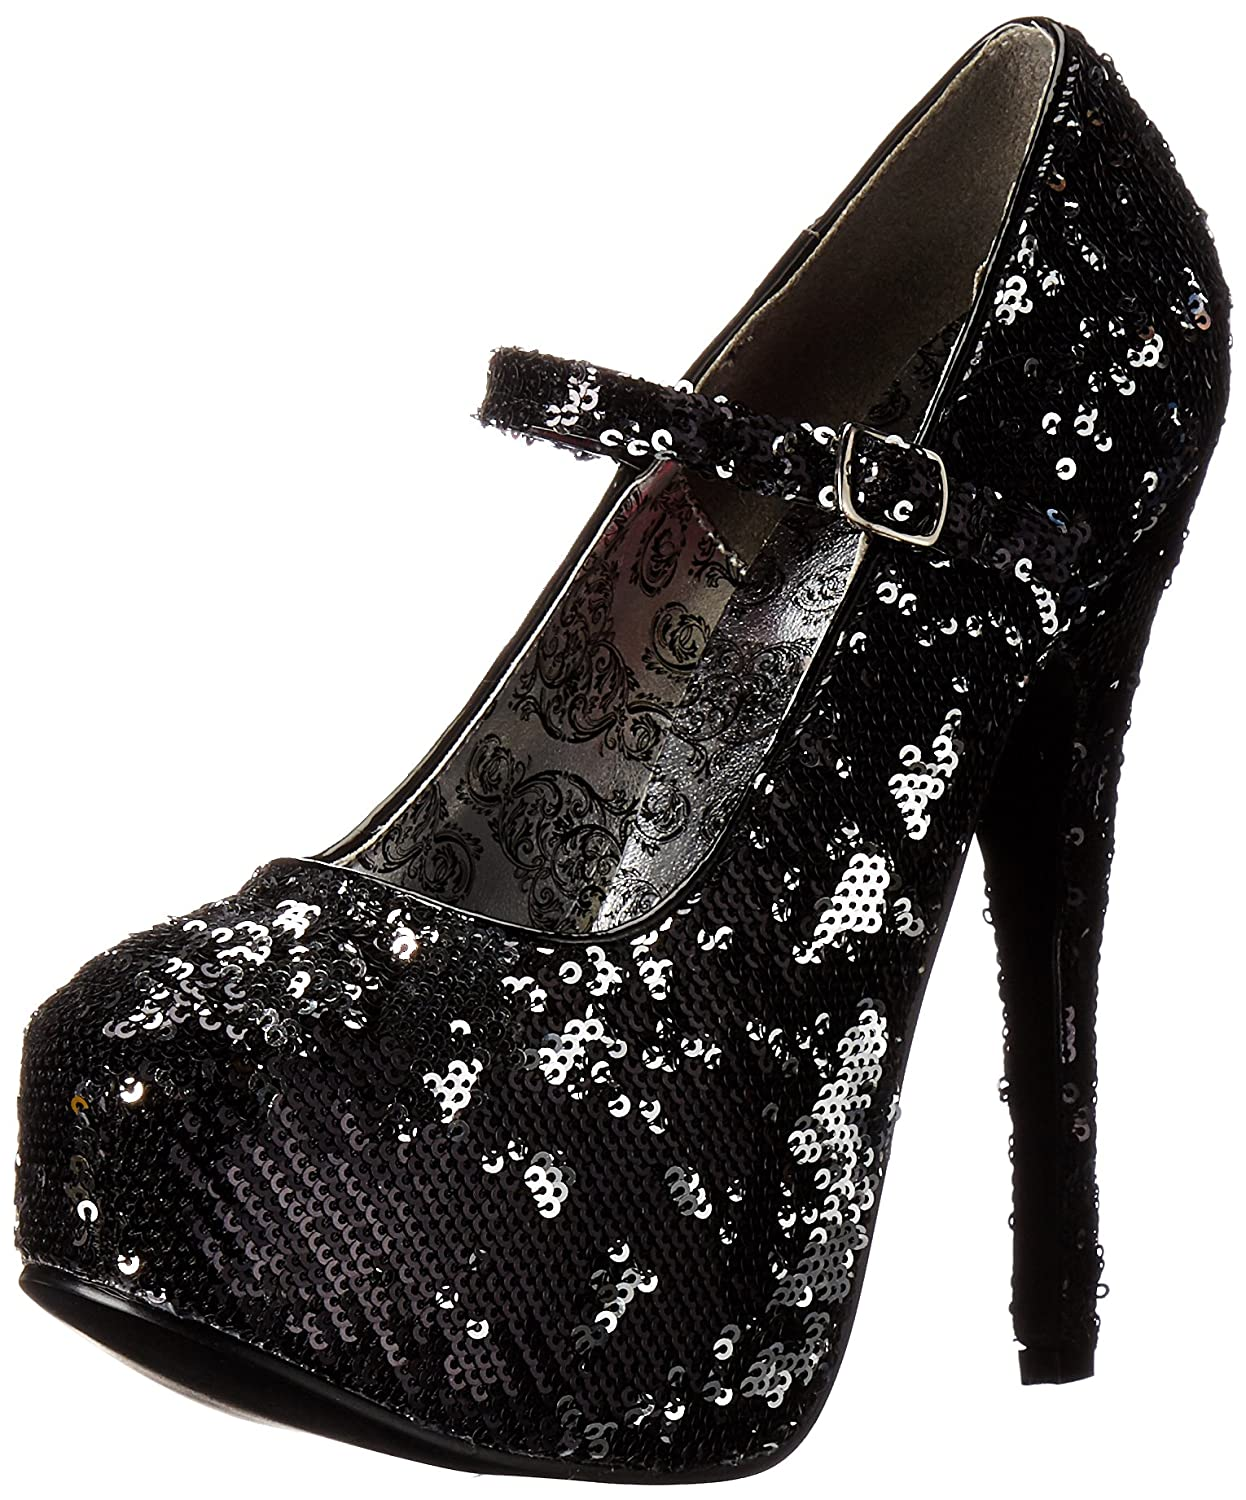 Bordello TEEZE-07SQ Blk-SLV Sequins 36) UK 3 (EU 36) Sequins - 7510d2